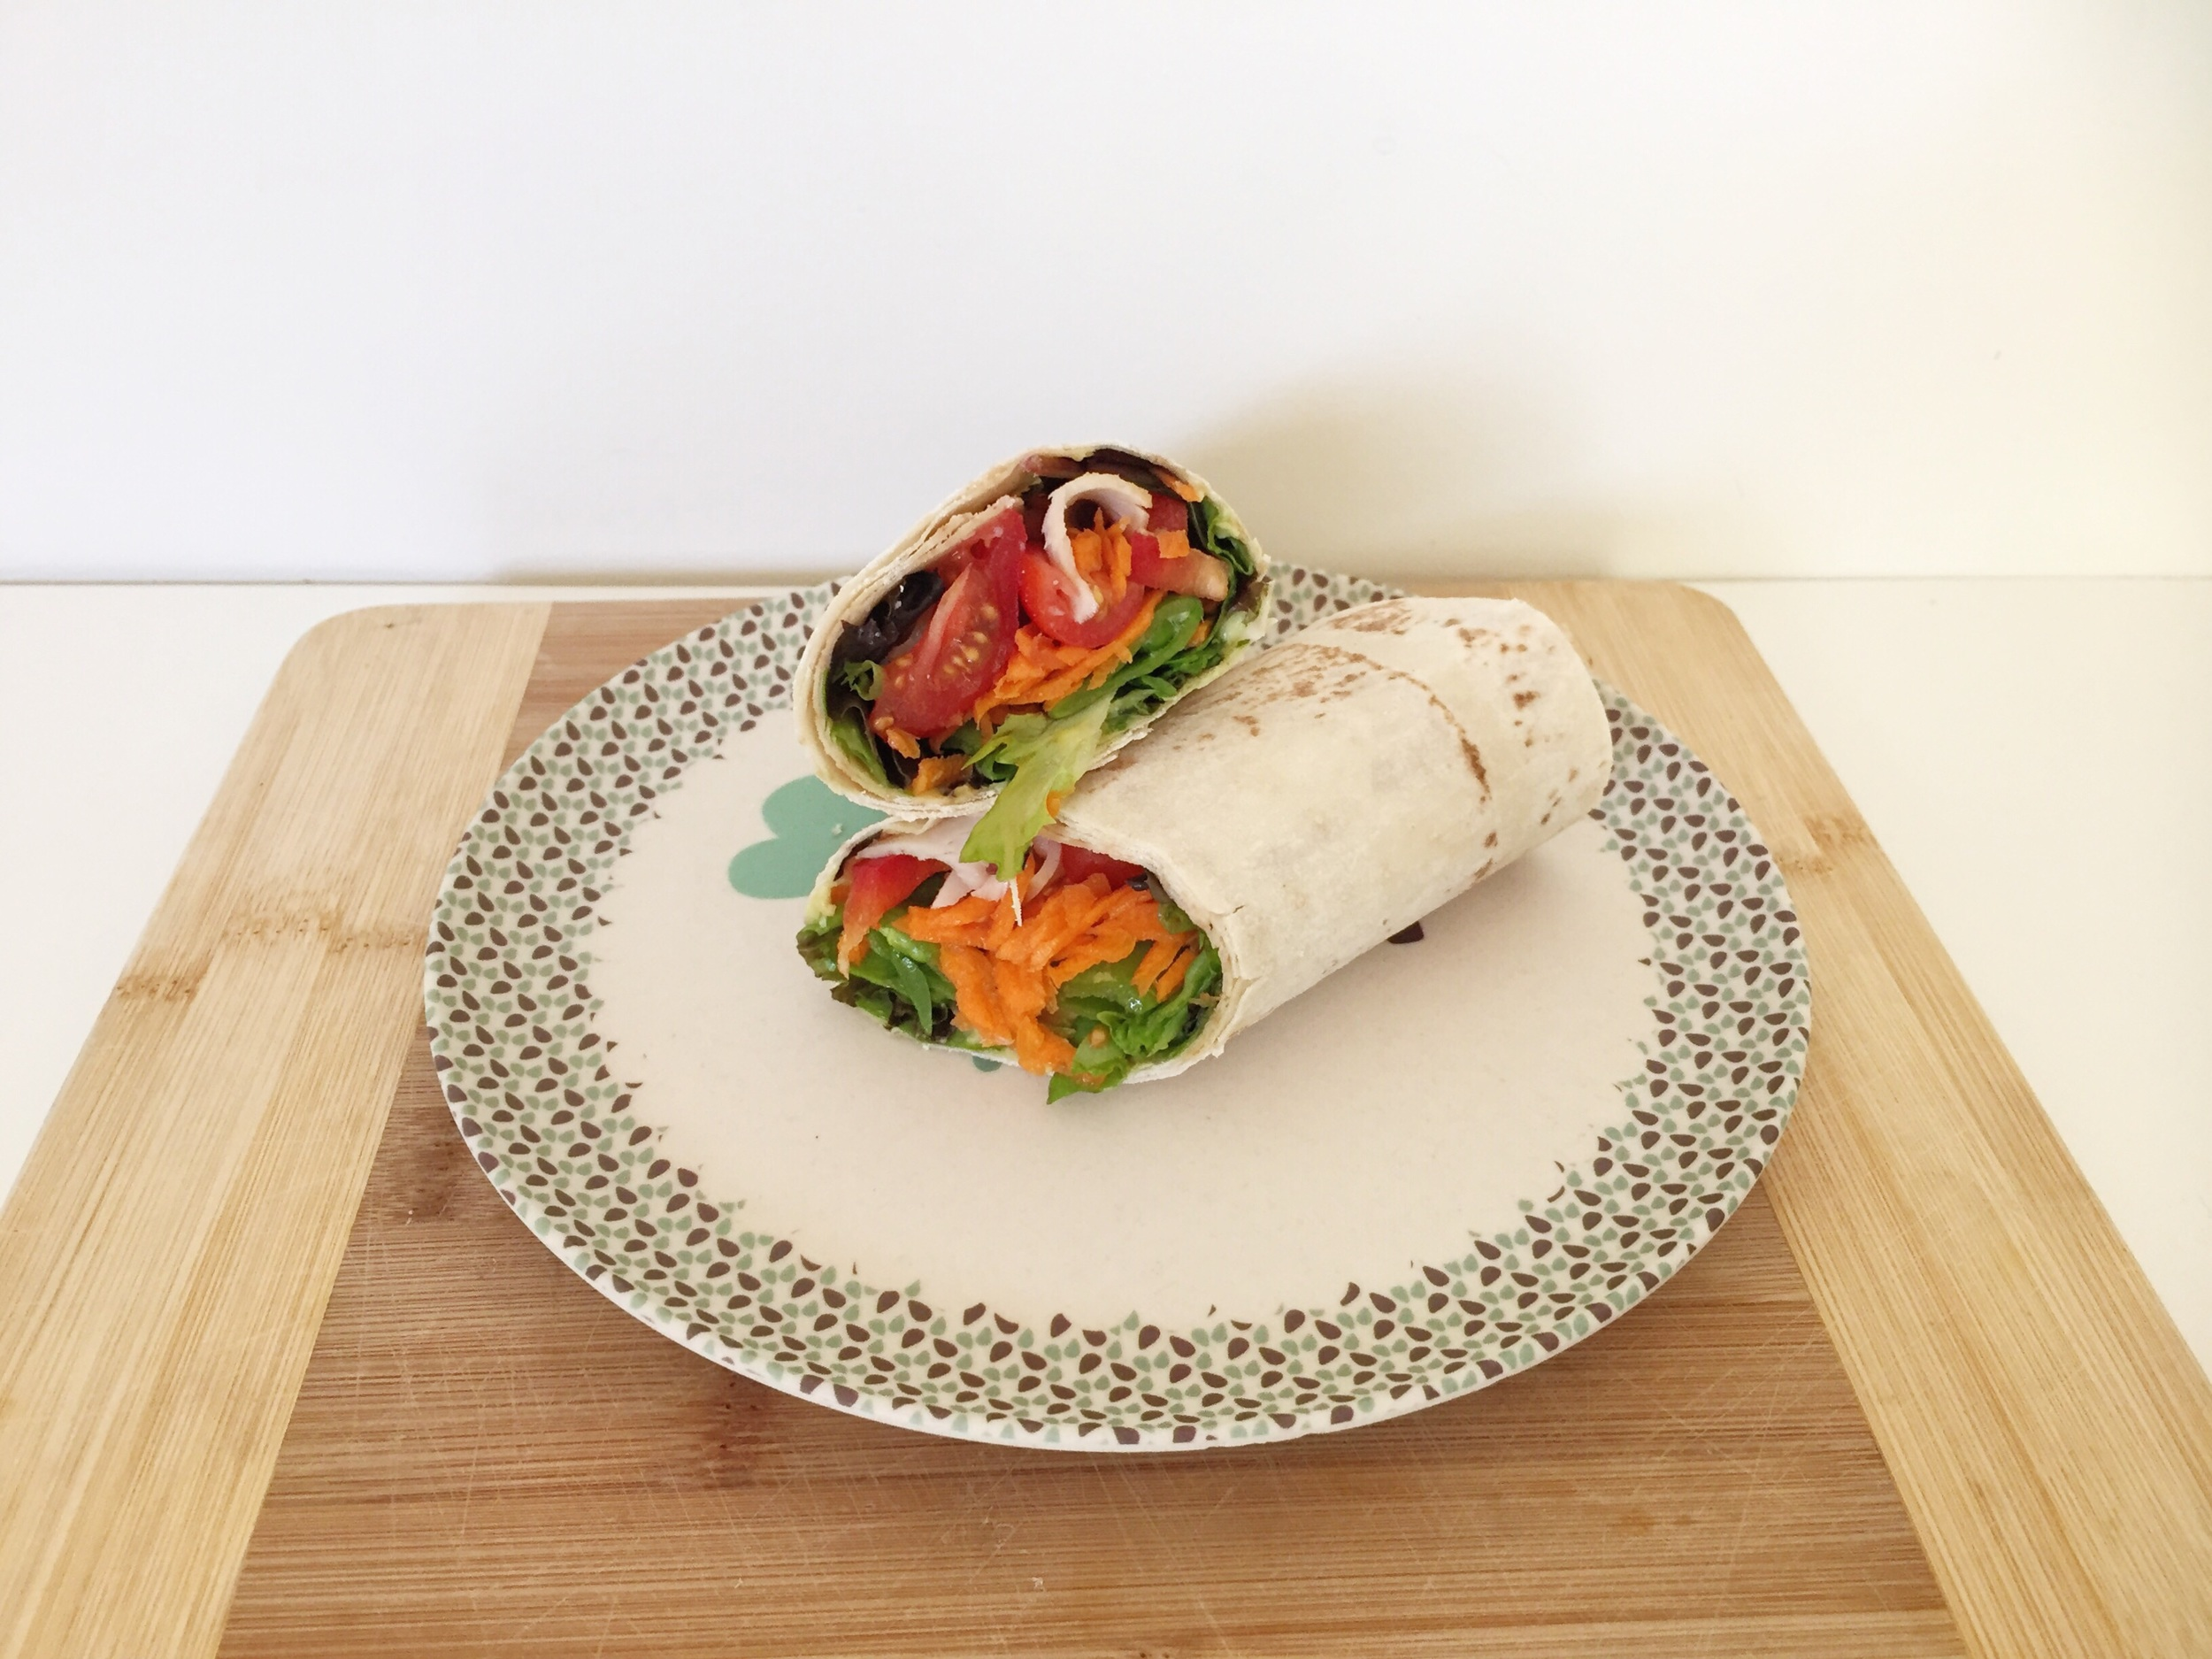 Lunch: mountain bread wrap with green salad, tomato, carrot, avocado, capsicum and turkey